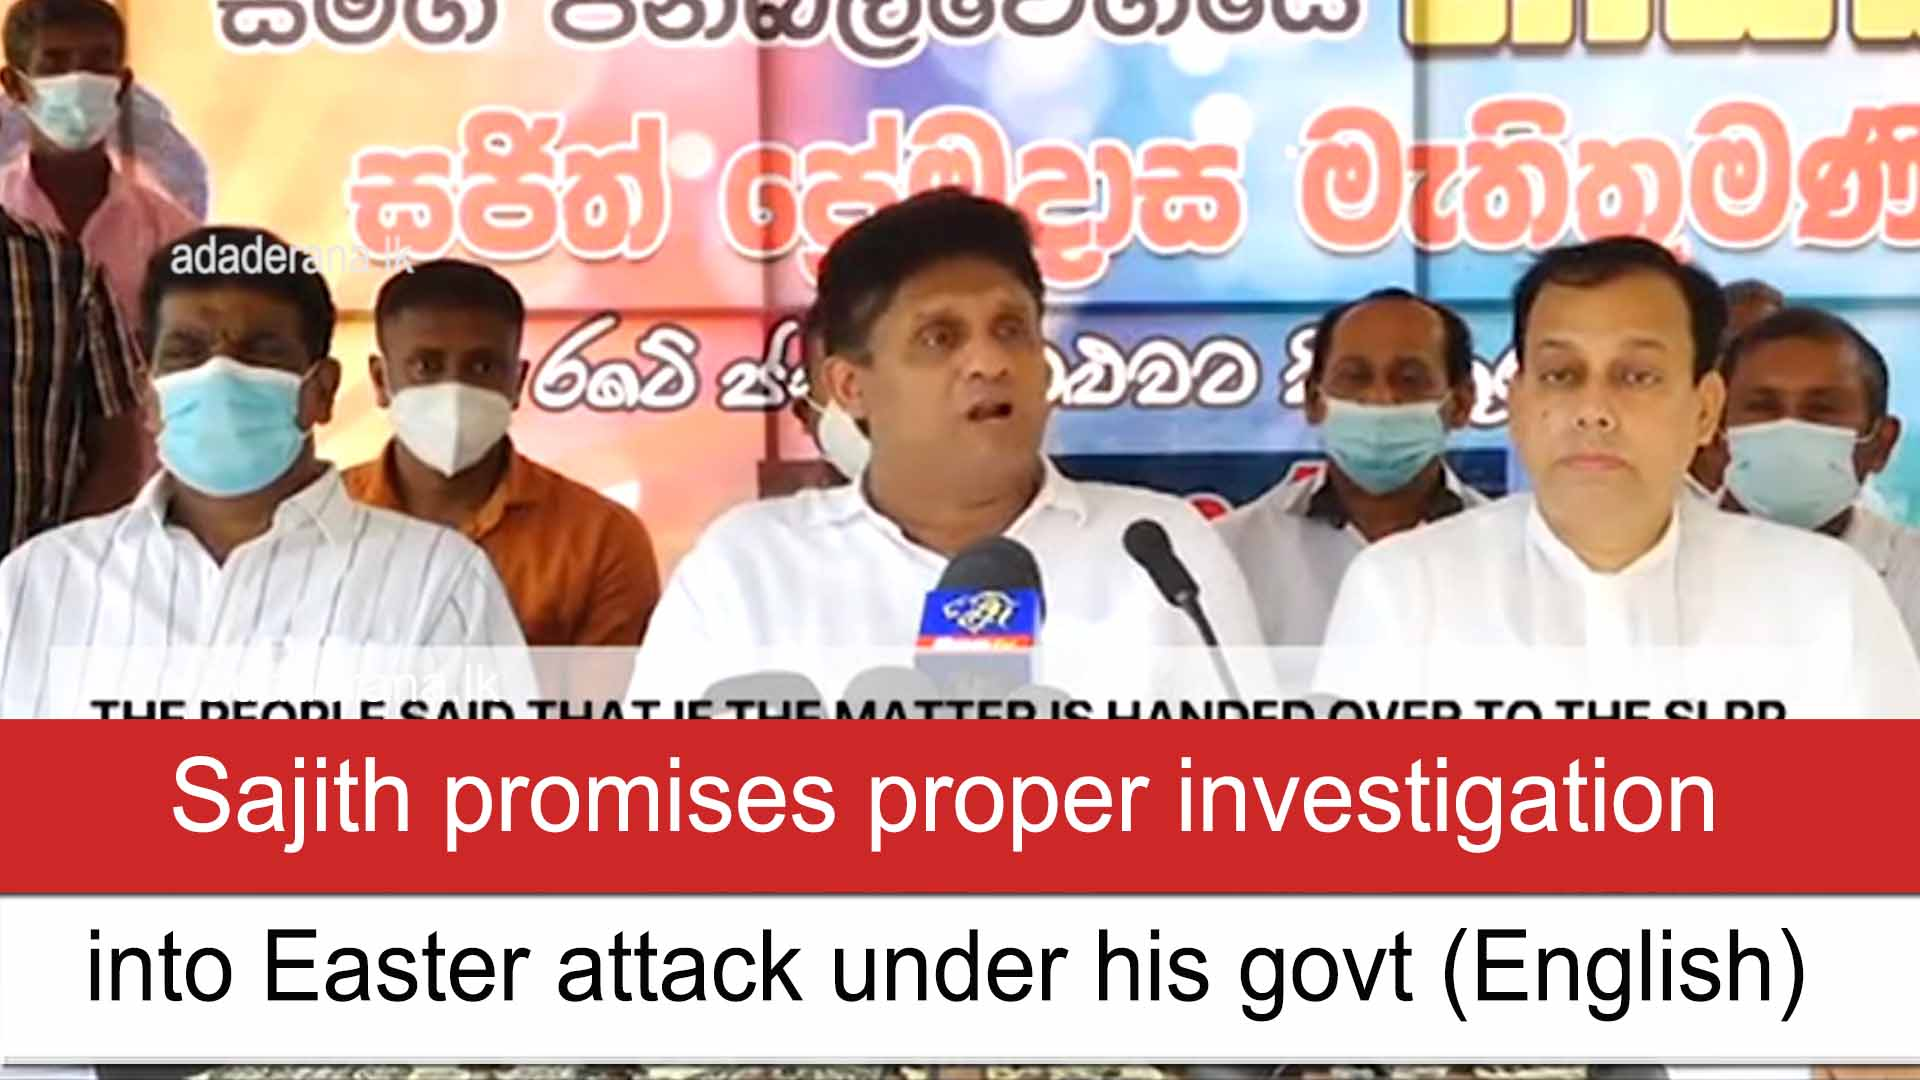 Sajith promises proper investigation into Easter attack under his govt (English)